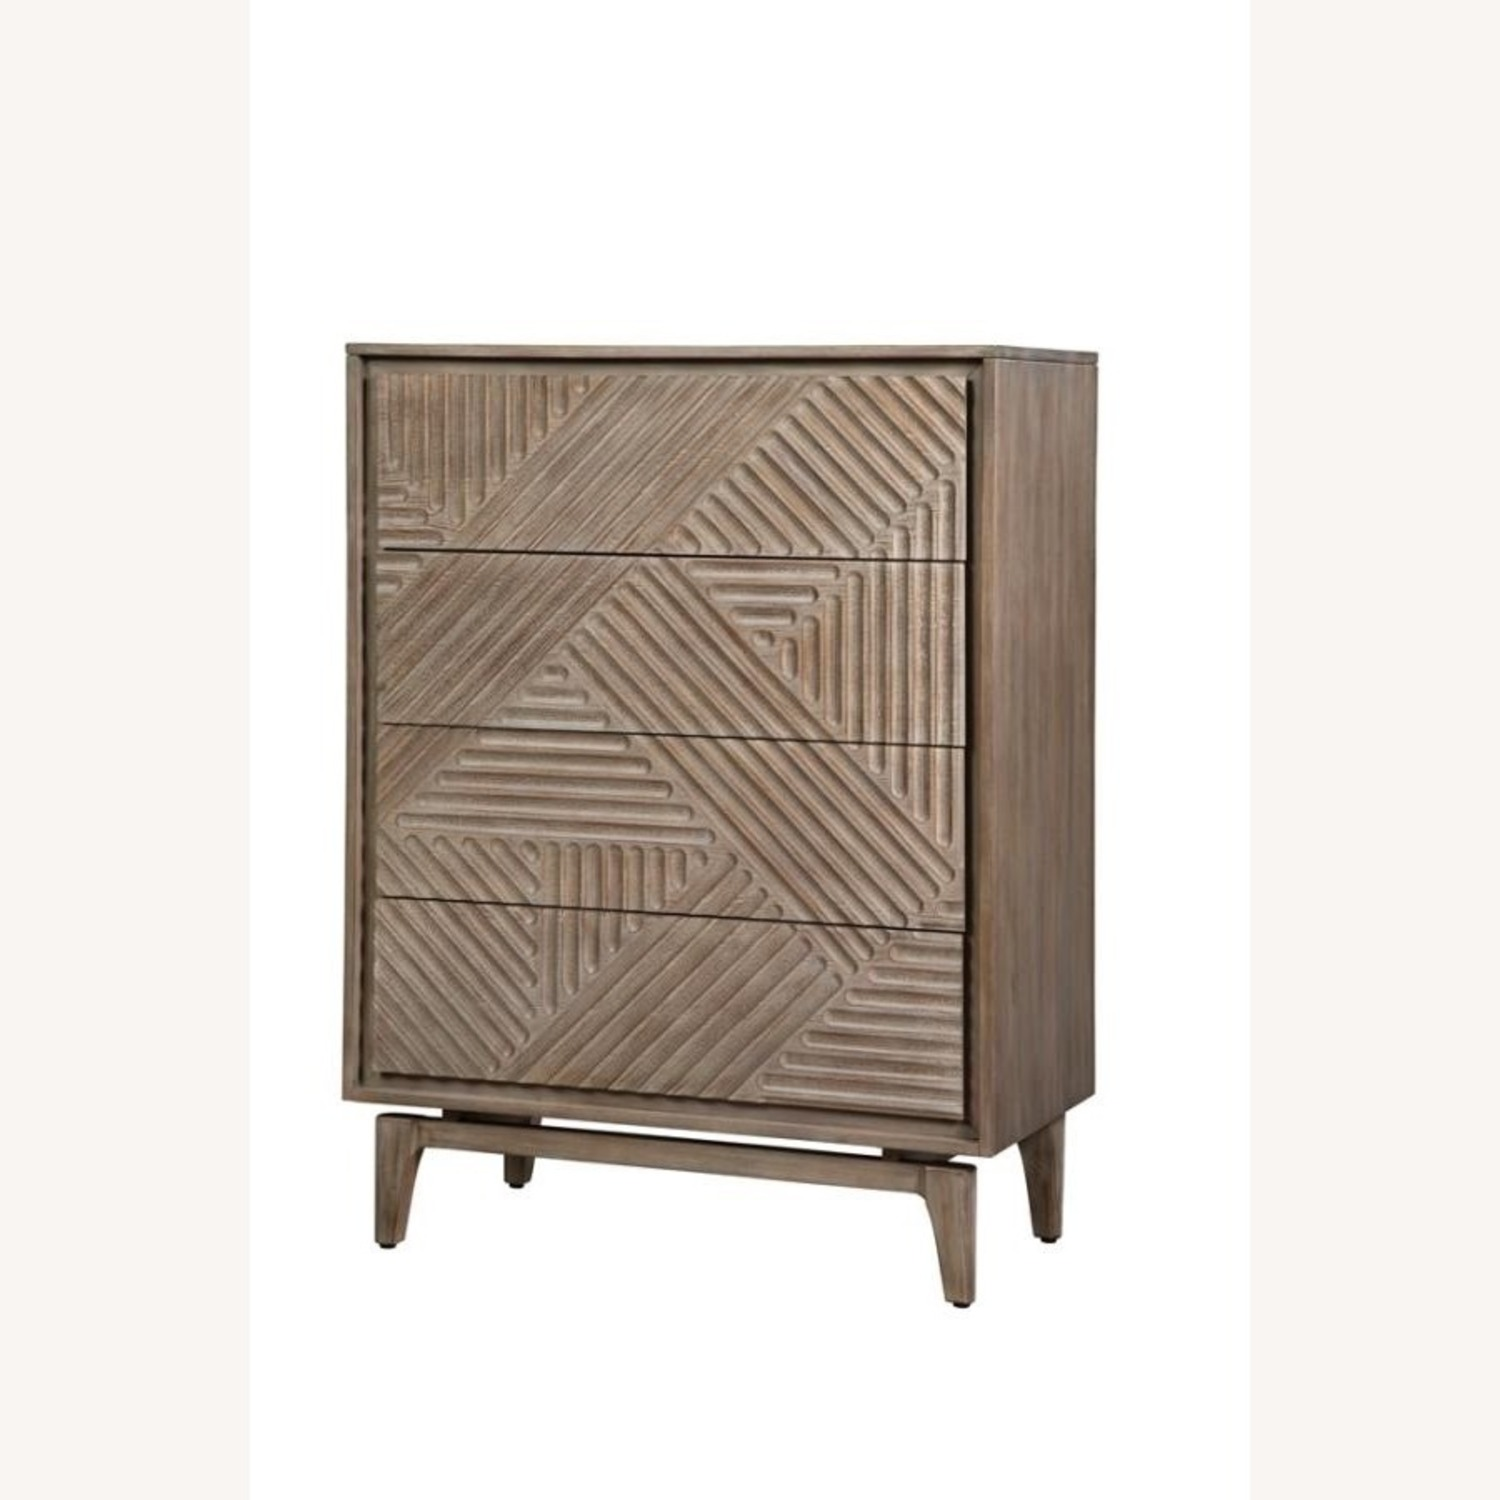 Modern Chest In Sandstone Finish W/ Unique Design - image-1